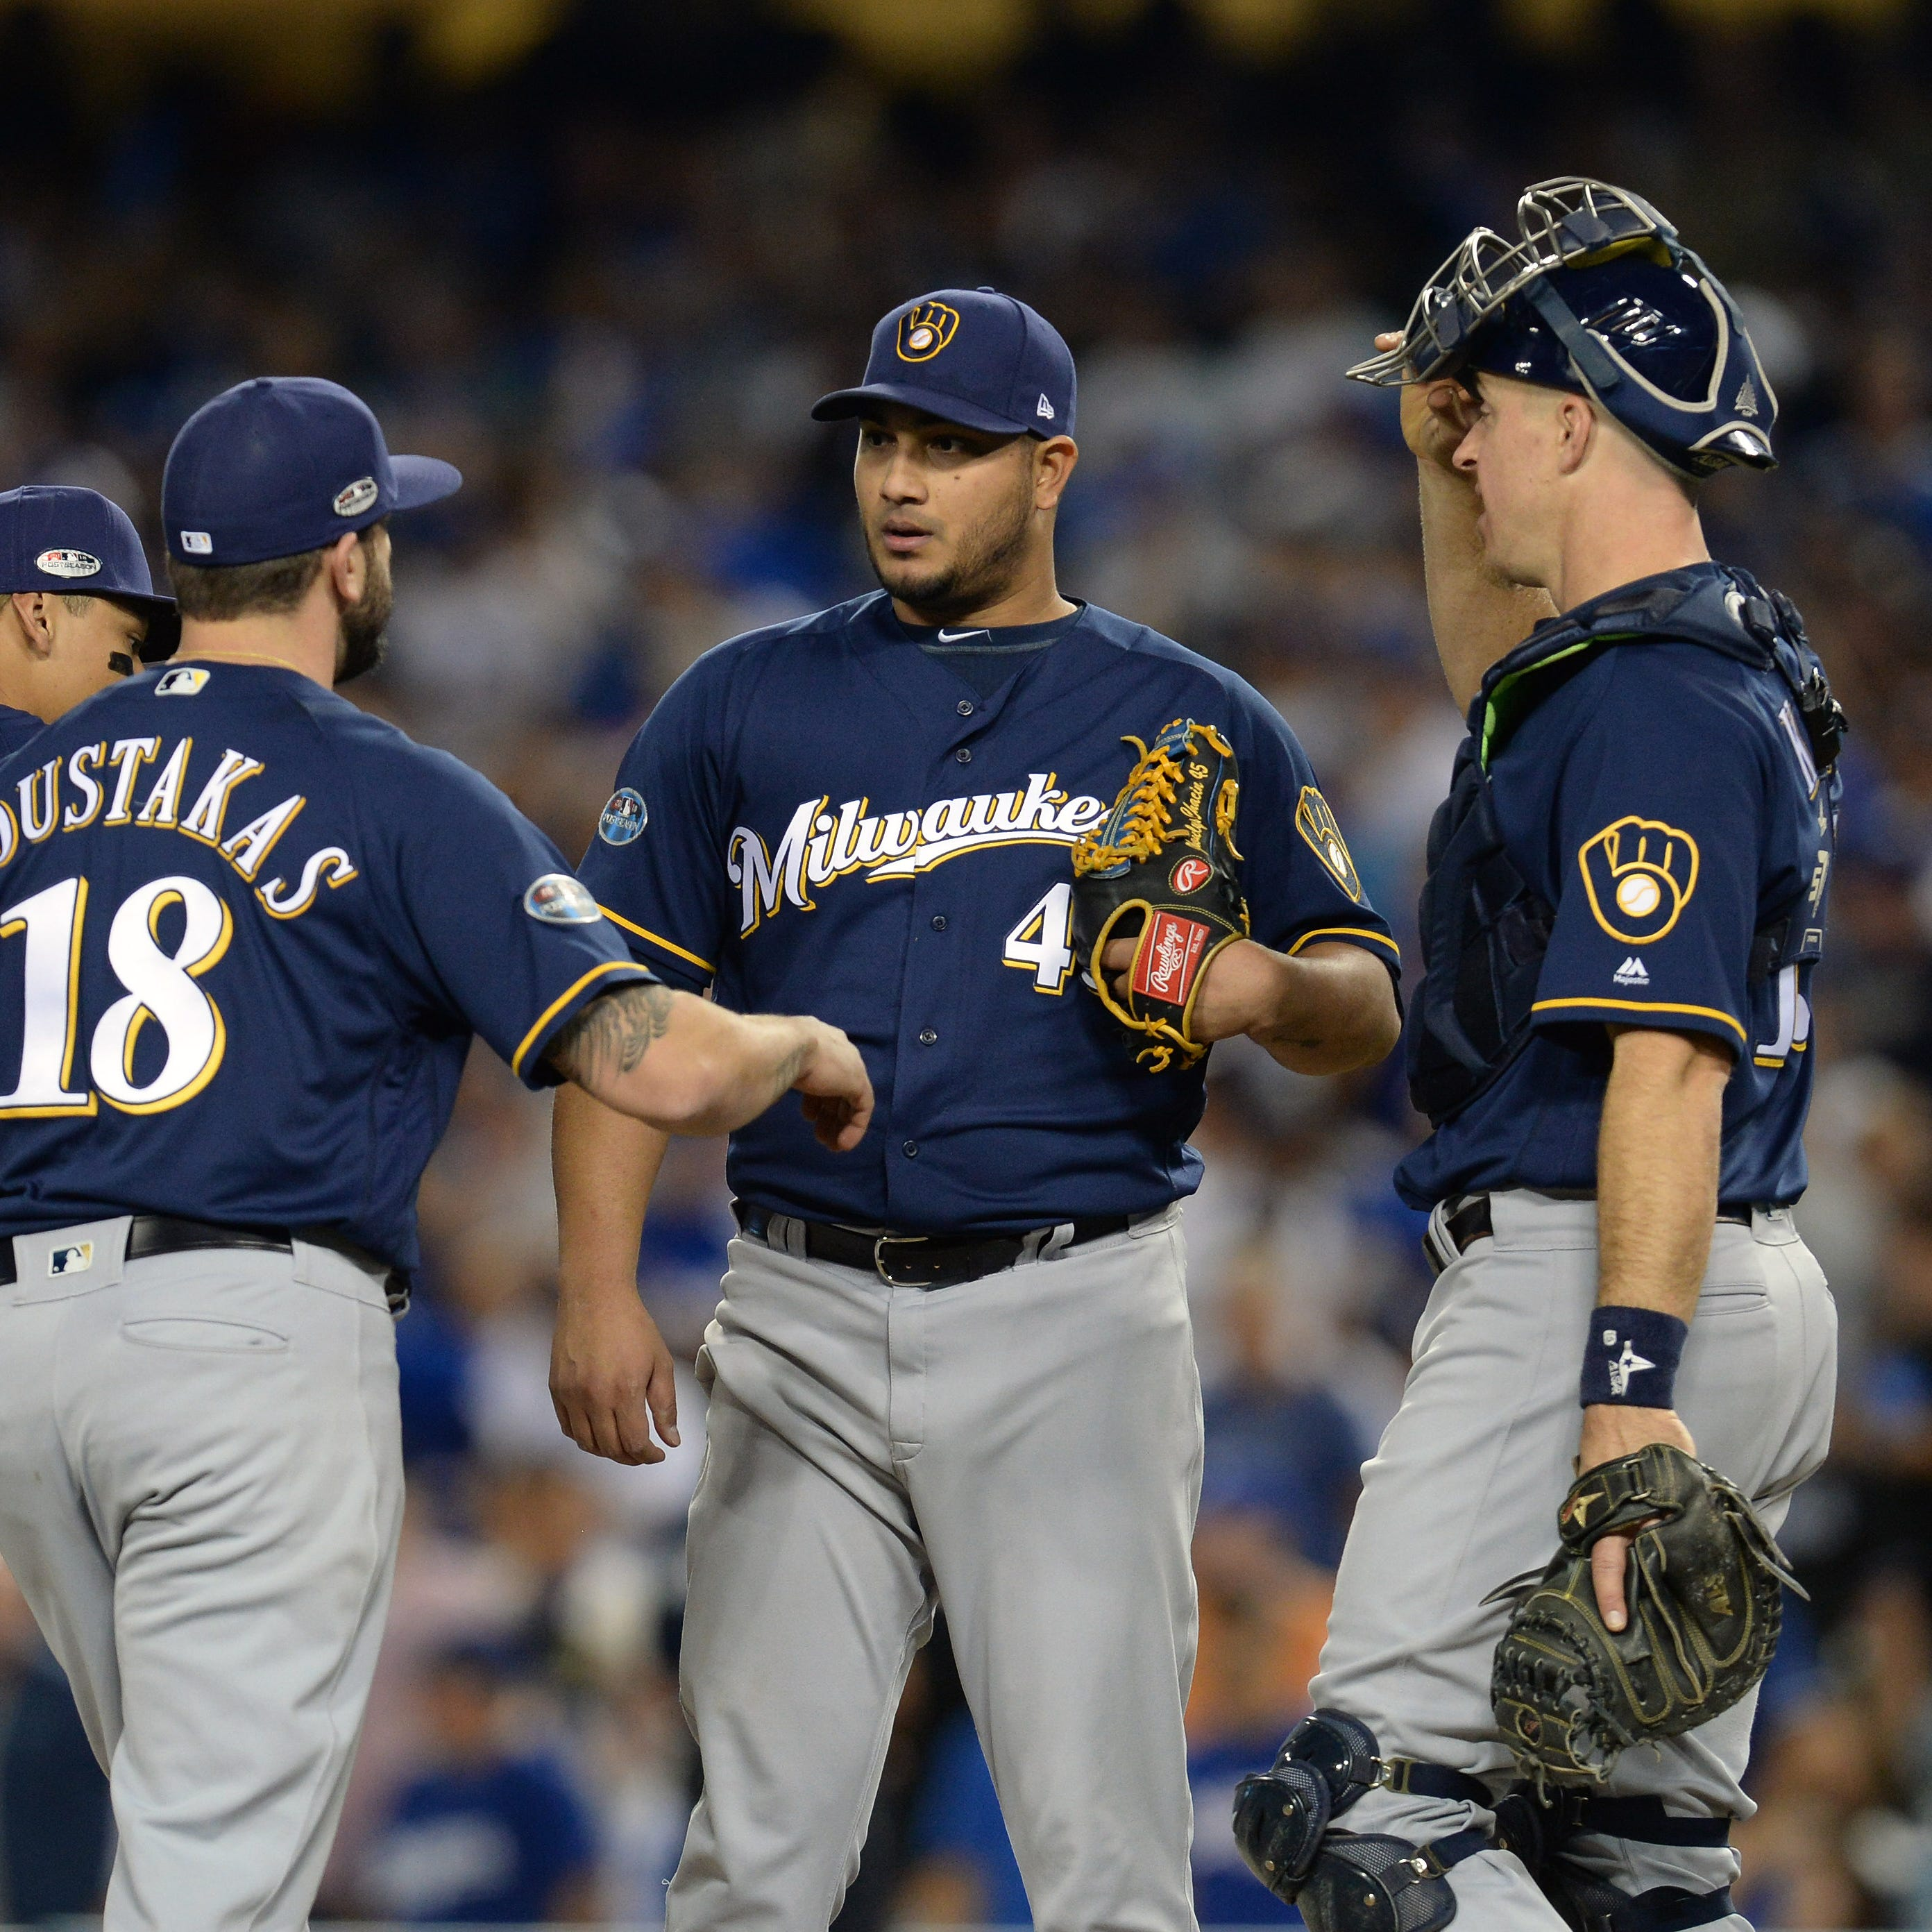 Haudricourt: Chacin delivers for Brewers again, and bullpen bounces back despite late scare